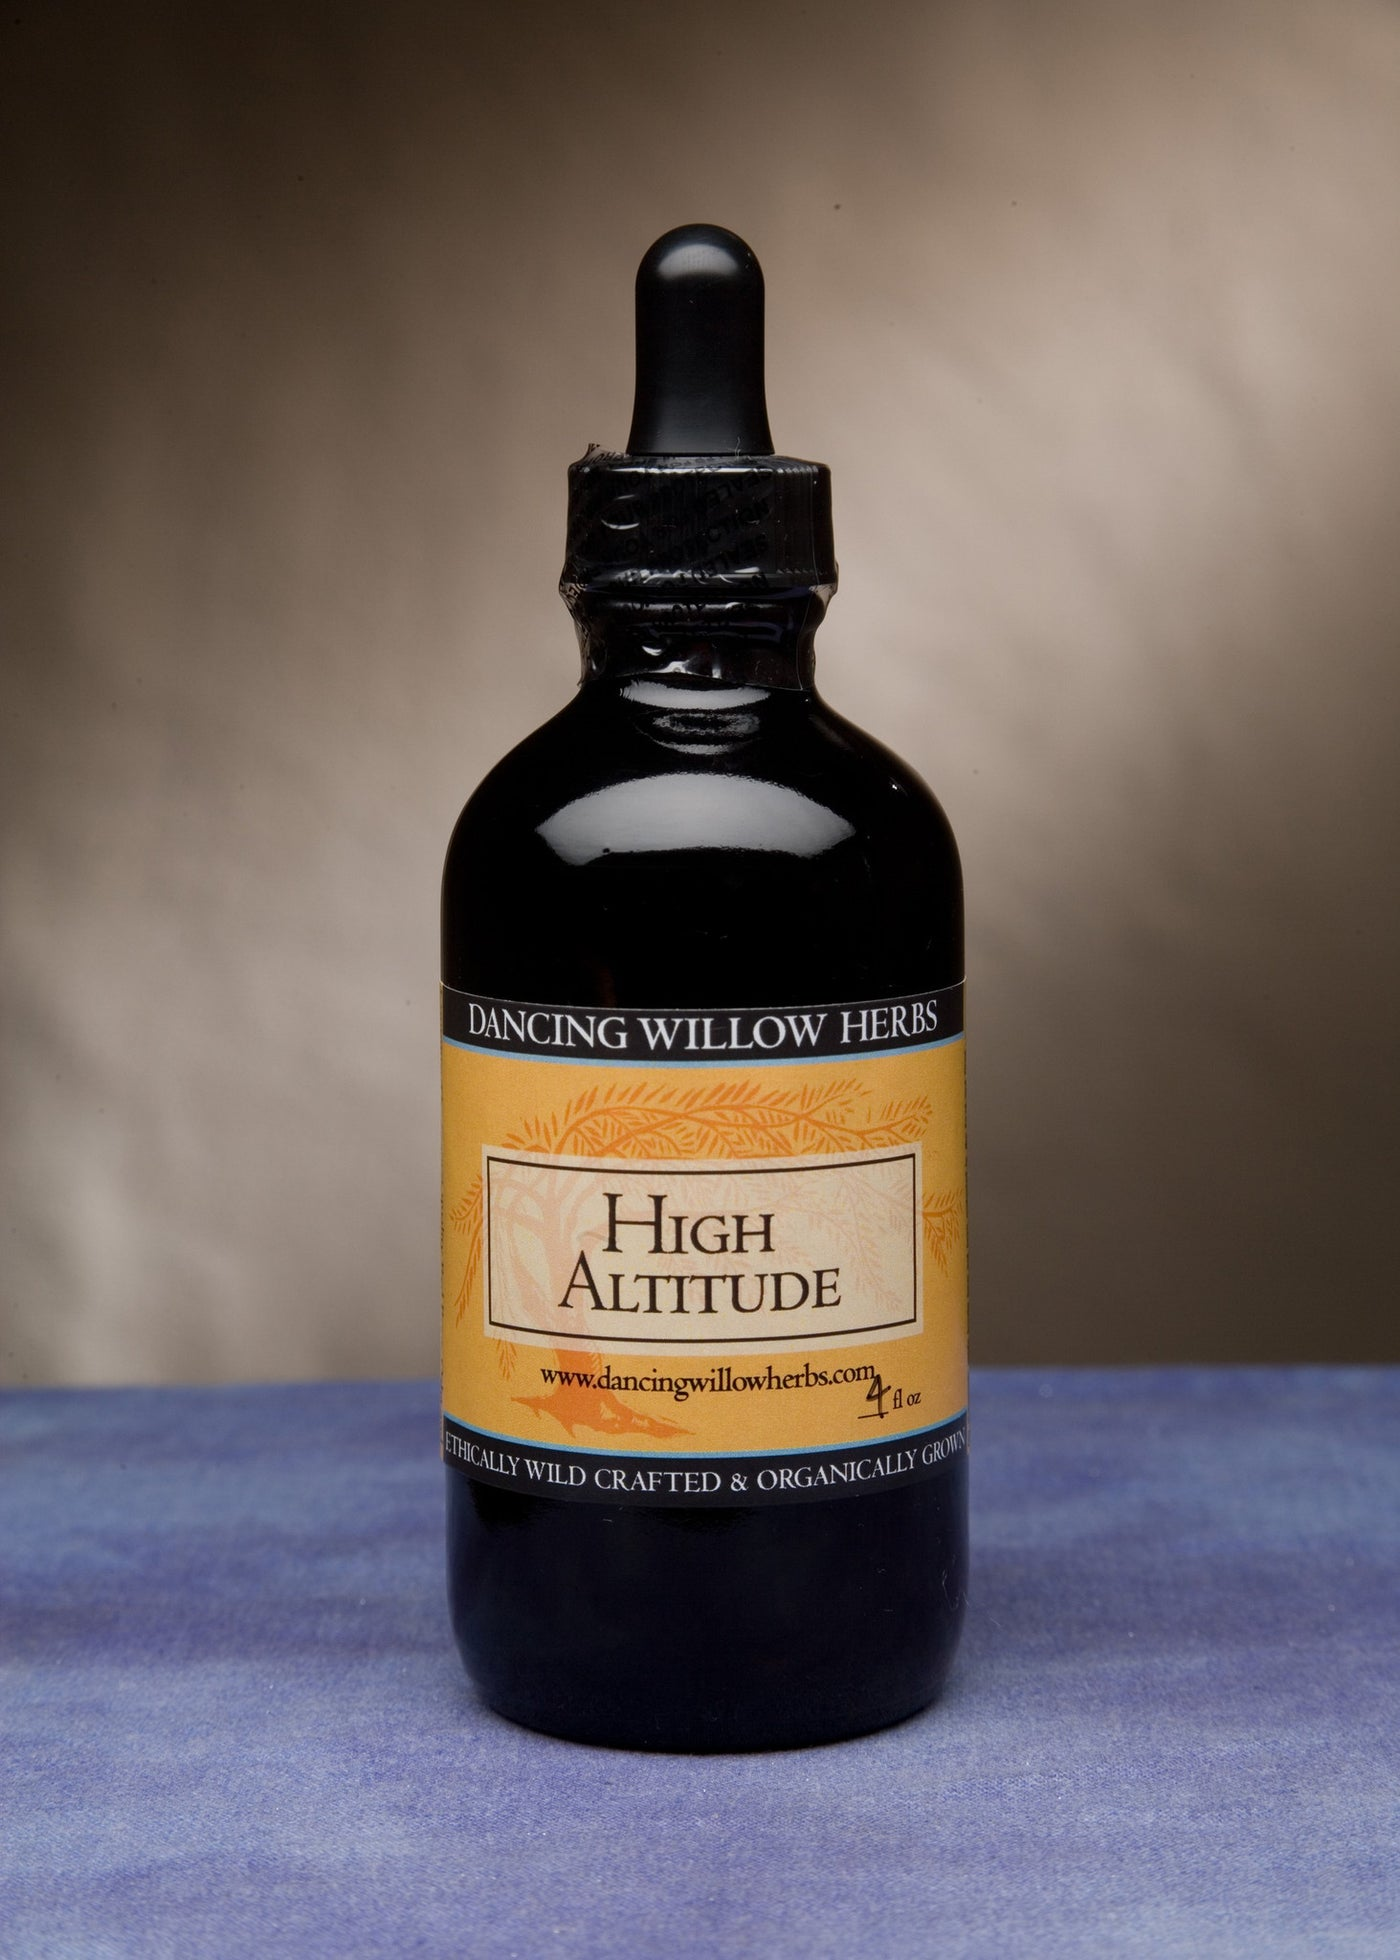 High Altitude - Dancing Willow Herbs Herbal Formulas - herbal formulas